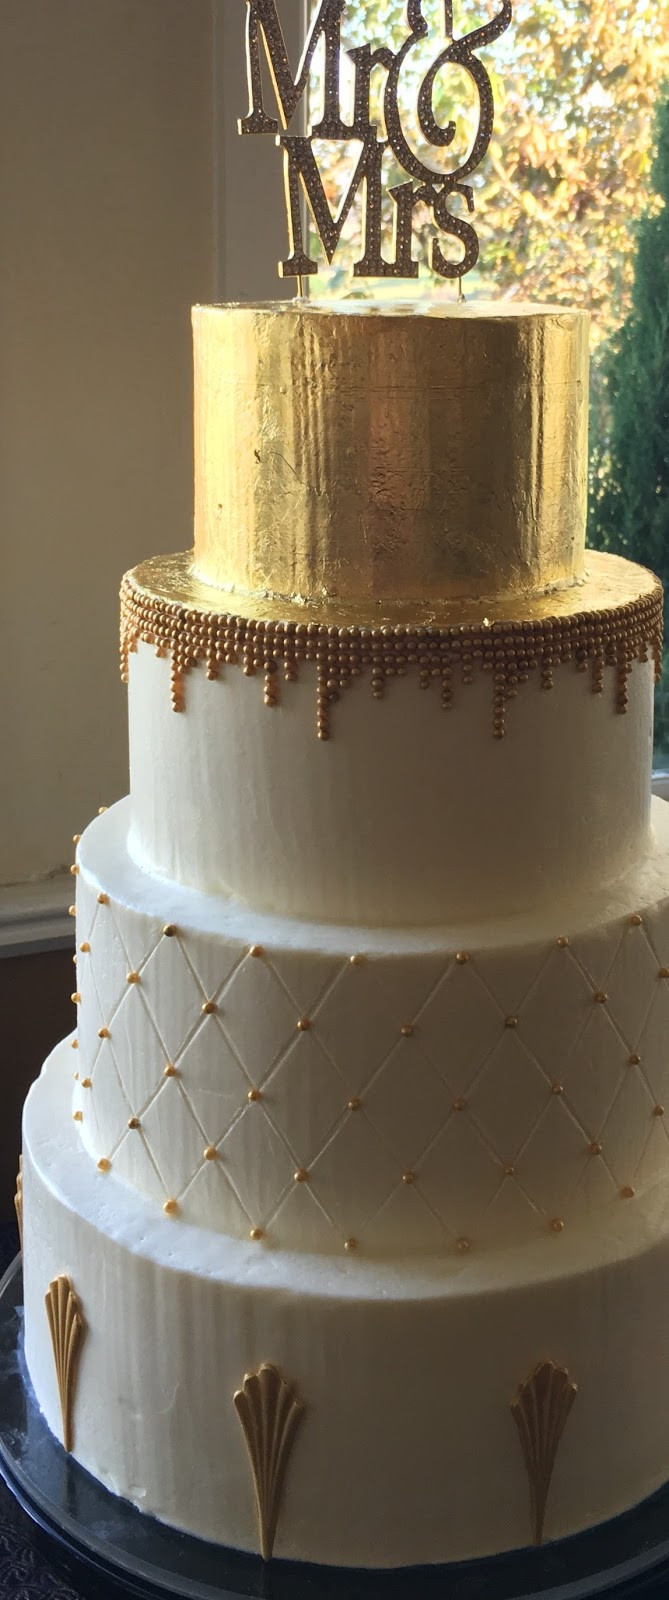 Buttercream Wedding Cakes  Penelope s Perfections Blog How to Add Gold to